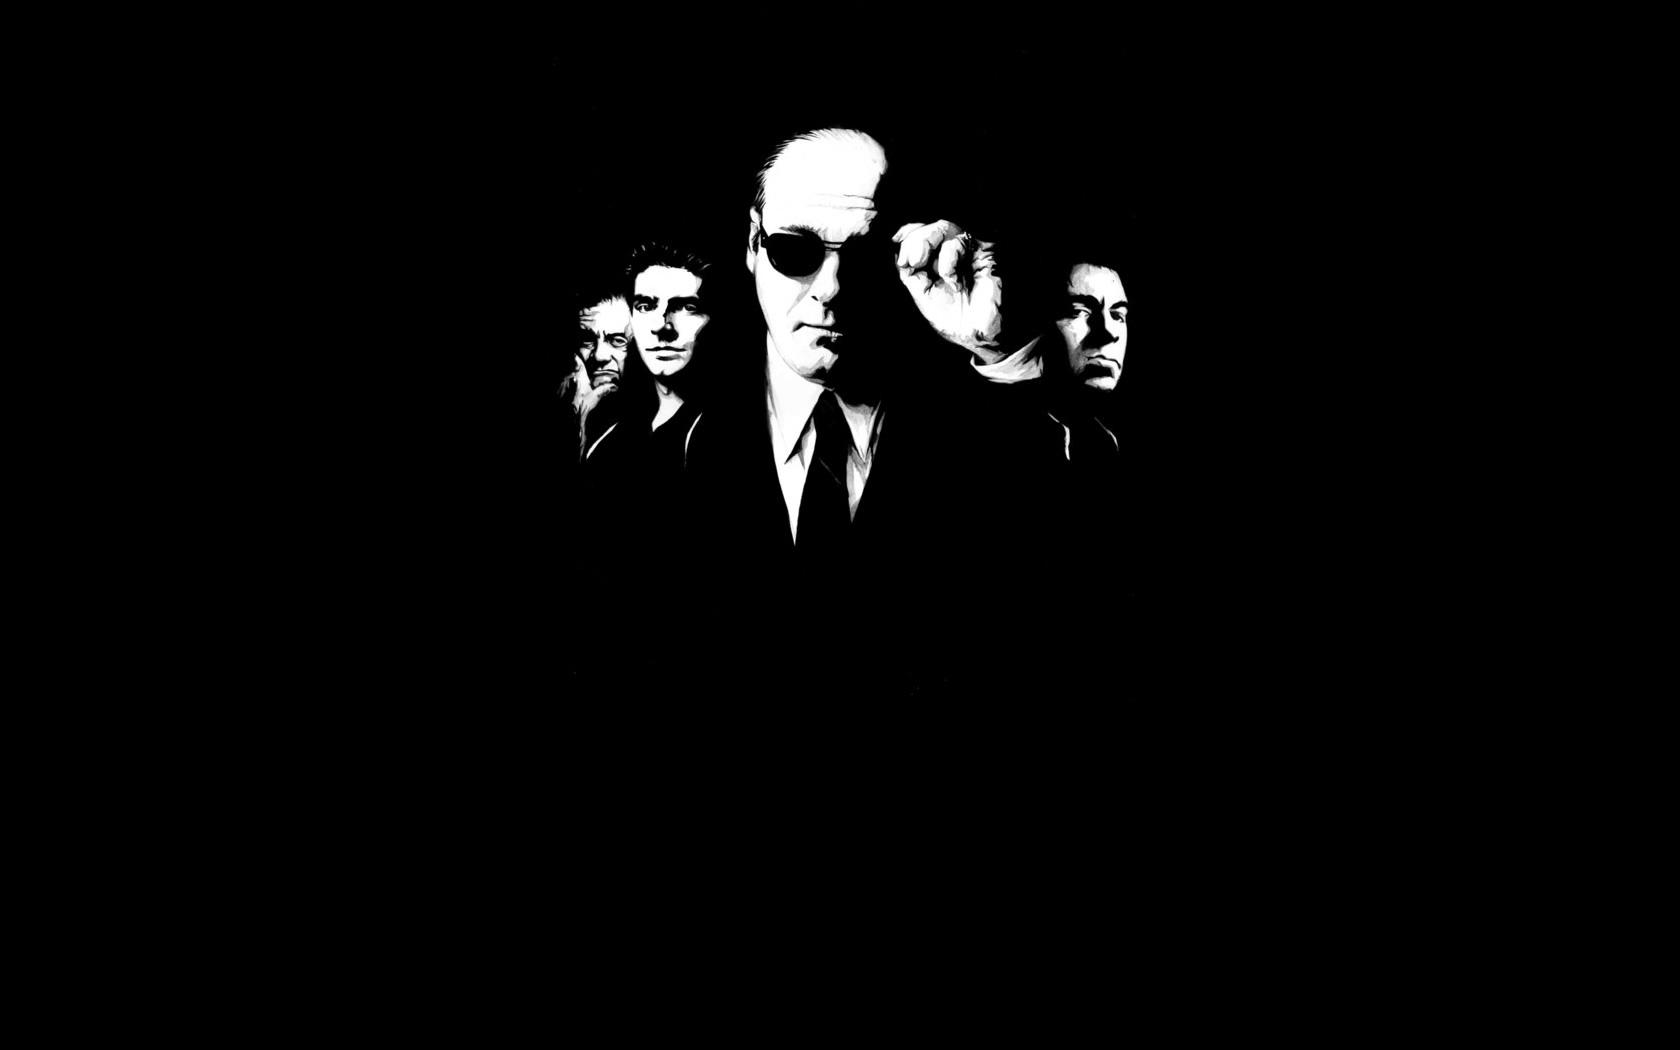 Most Badass Mafia Wallpapers - Top Free Most Badass Mafia Backgrounds -  WallpaperAccess